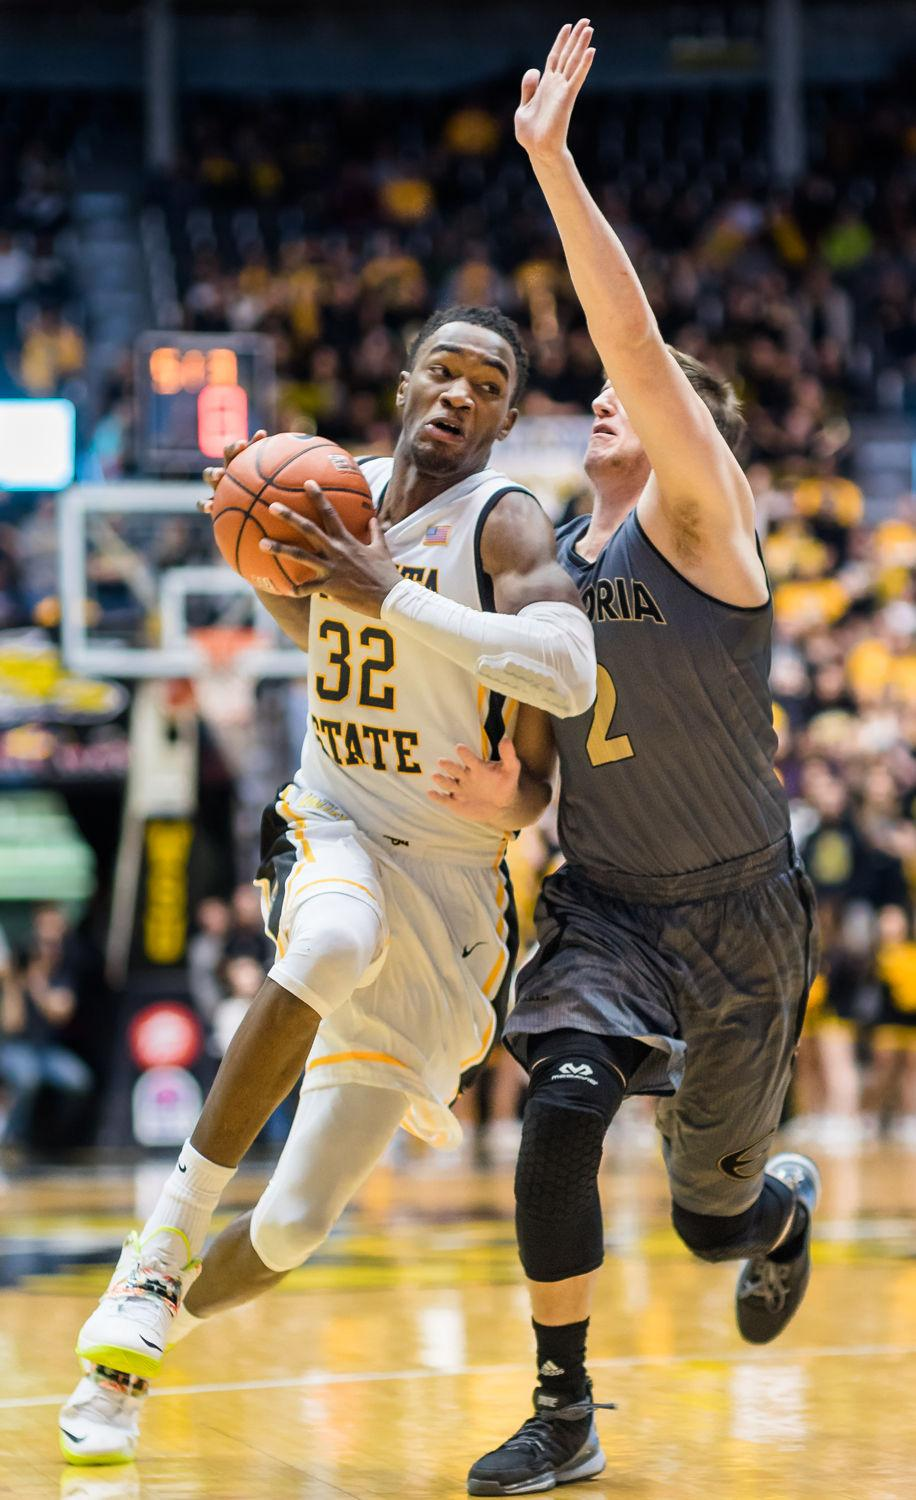 Freshman Markis McDuffie drives into the paint against his Emporia State opponent Nov. 21. McDuffie scored 15 points against the University of Northern Iowa on Wednesday and rallied a second-half victory of the Panthers.